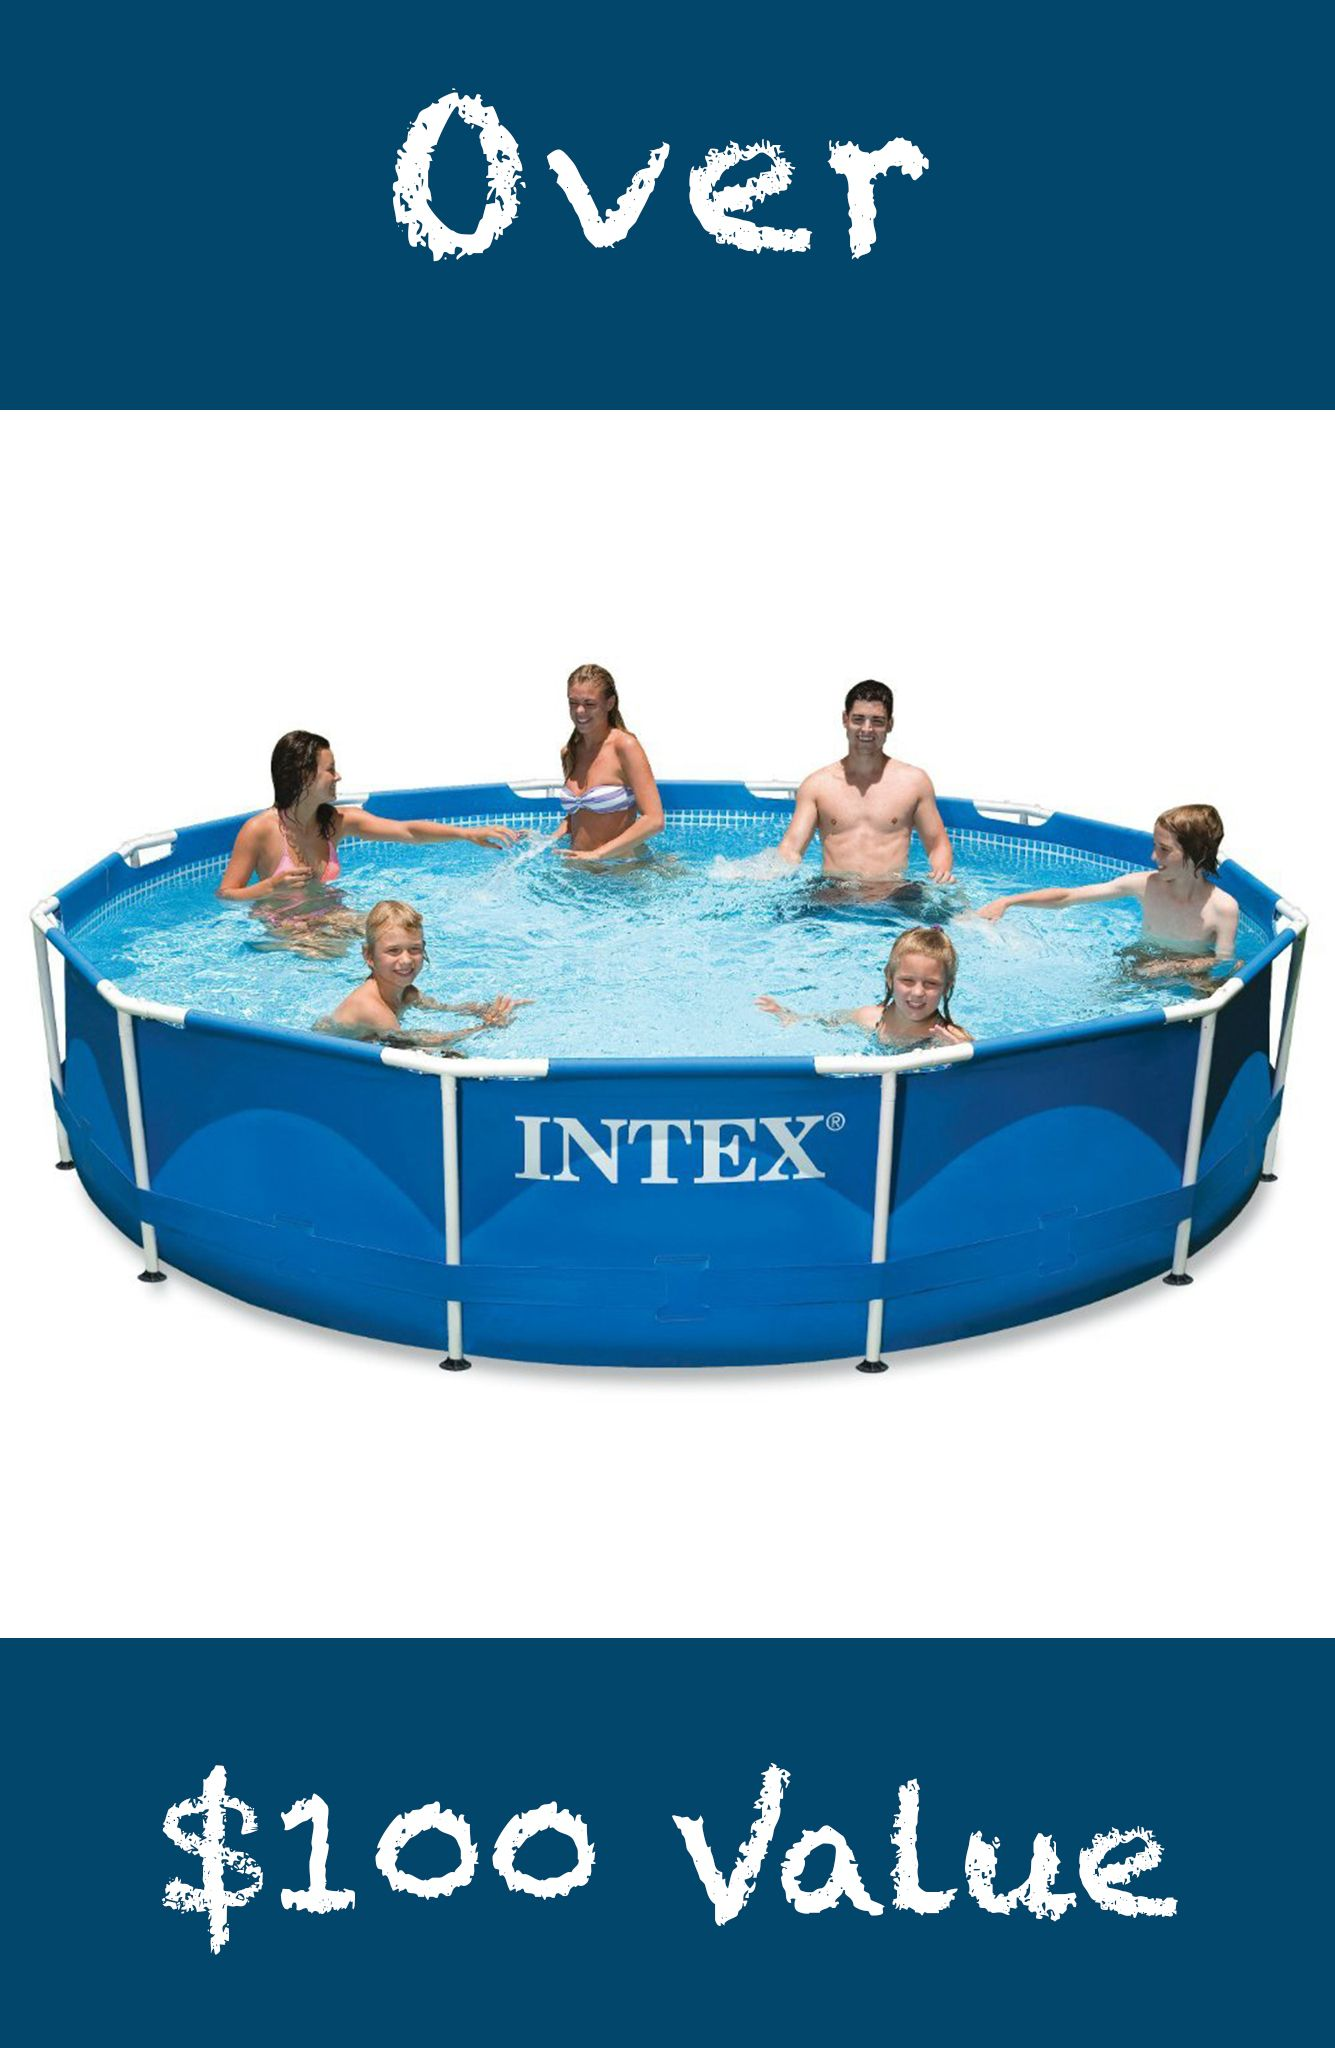 Intex 12′ x 30″ Above Ground Pool + Filter Pump + Football